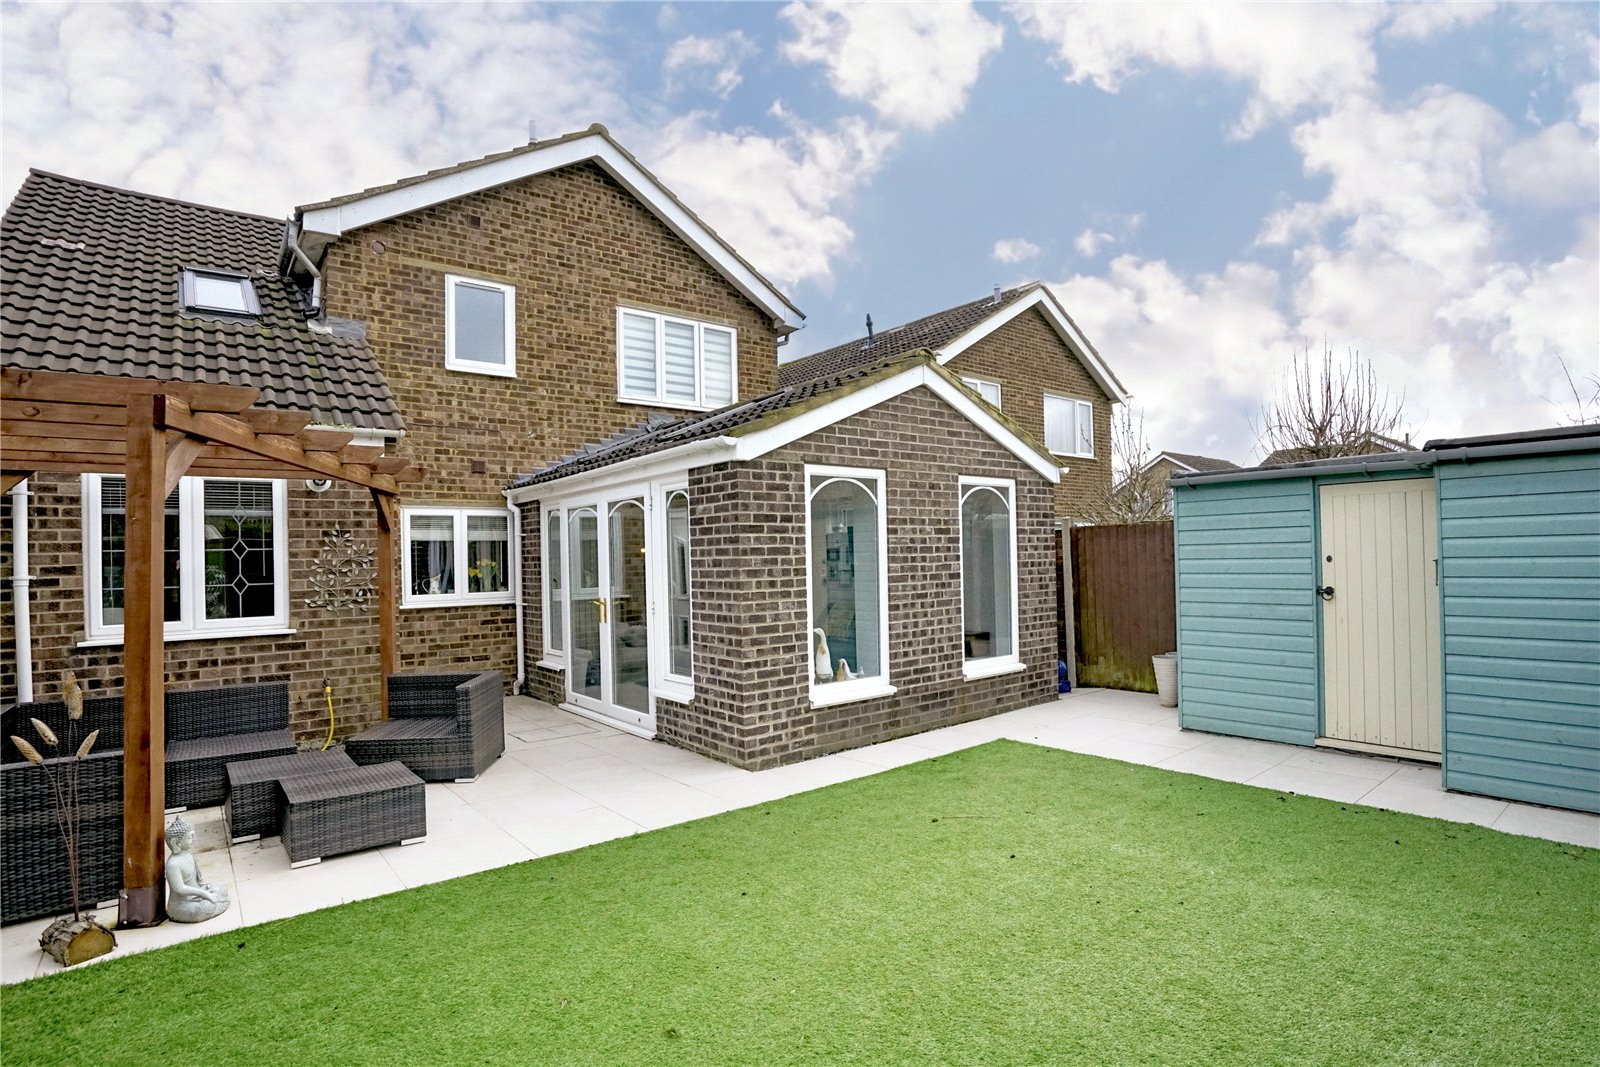 4 bed house for sale in Weston Court, Eaton Ford 13